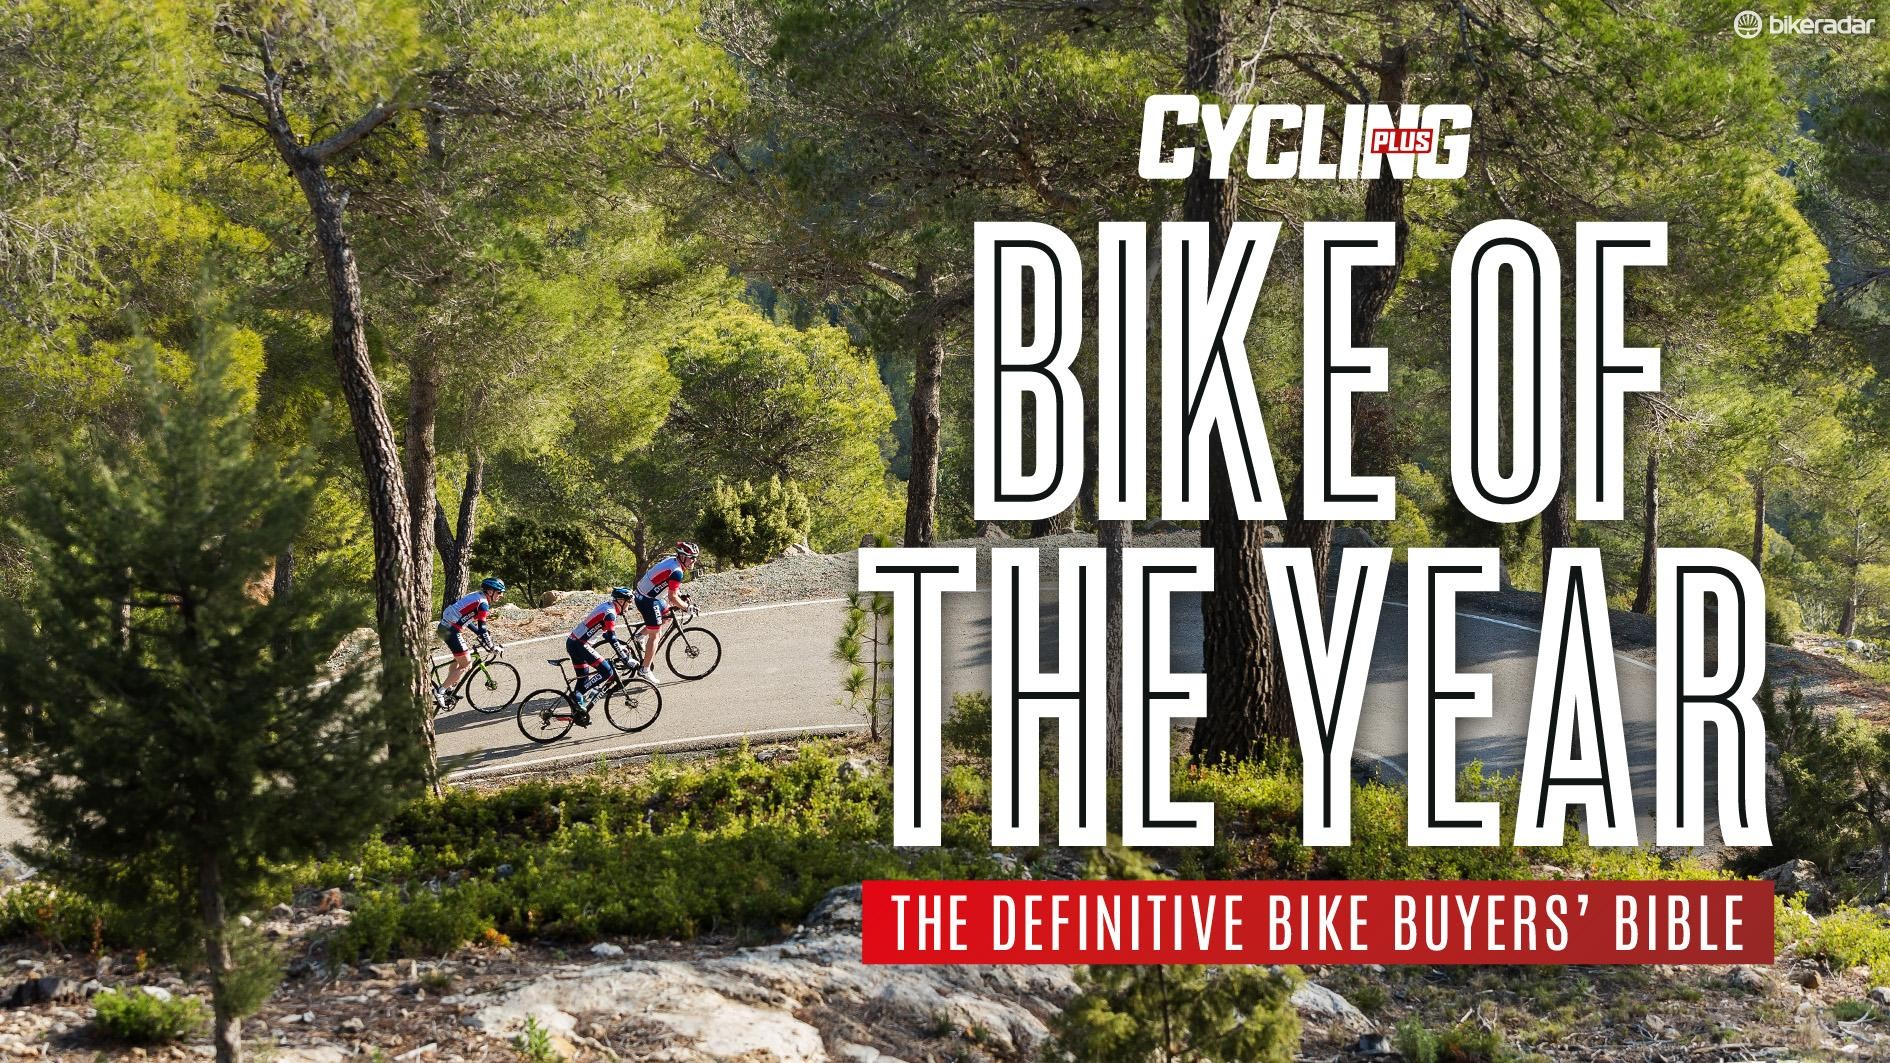 Cycling Plus's Bike of the Year winner will soon be announced